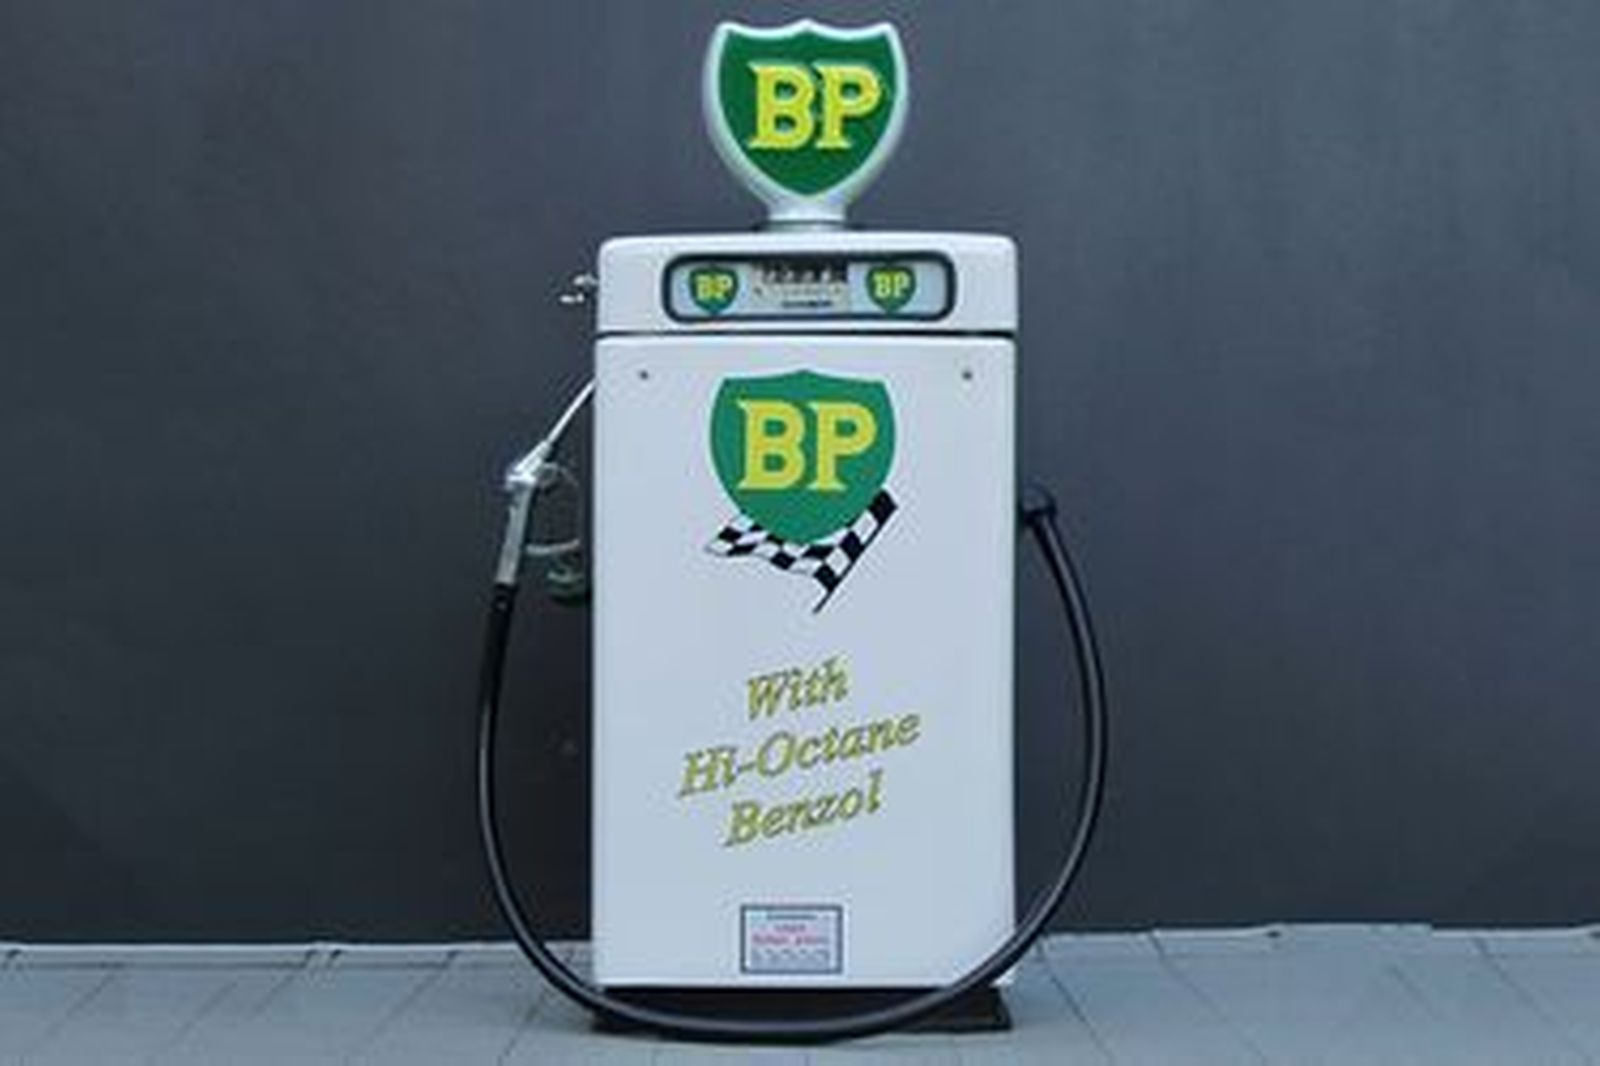 Petrol Pump - Wayne 605 Electric in BP Racing Livery (Restored with Reproduction Globe)